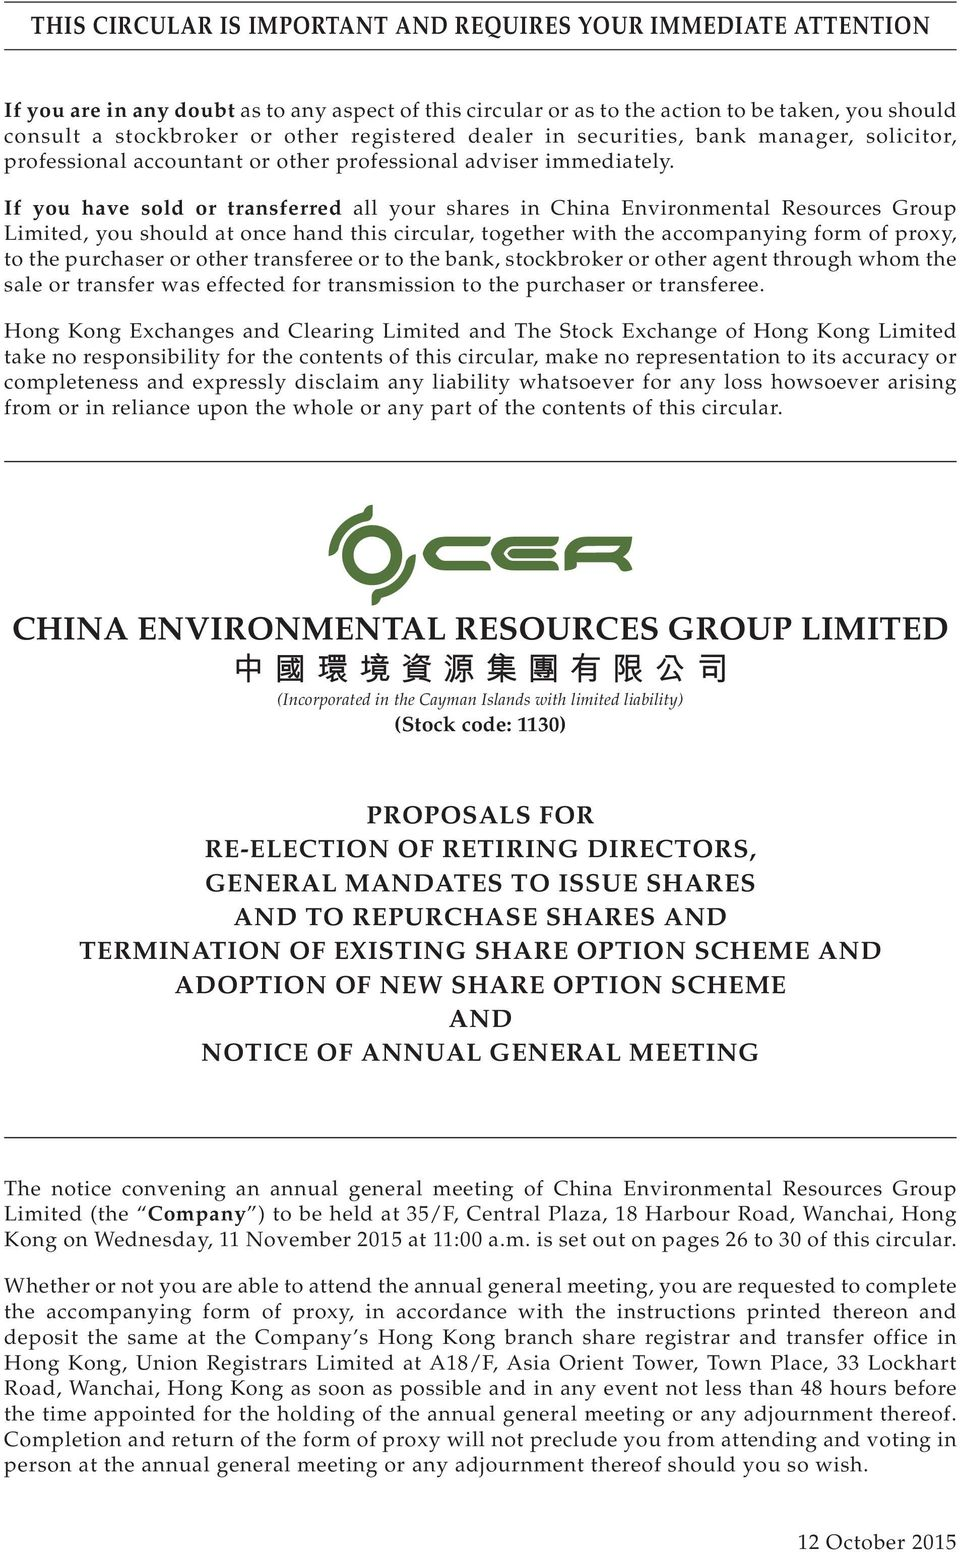 If you have sold or transferred all your shares in China Environmental Resources Group Limited, you should at once hand this circular, together with the accompanying form of proxy, to the purchaser